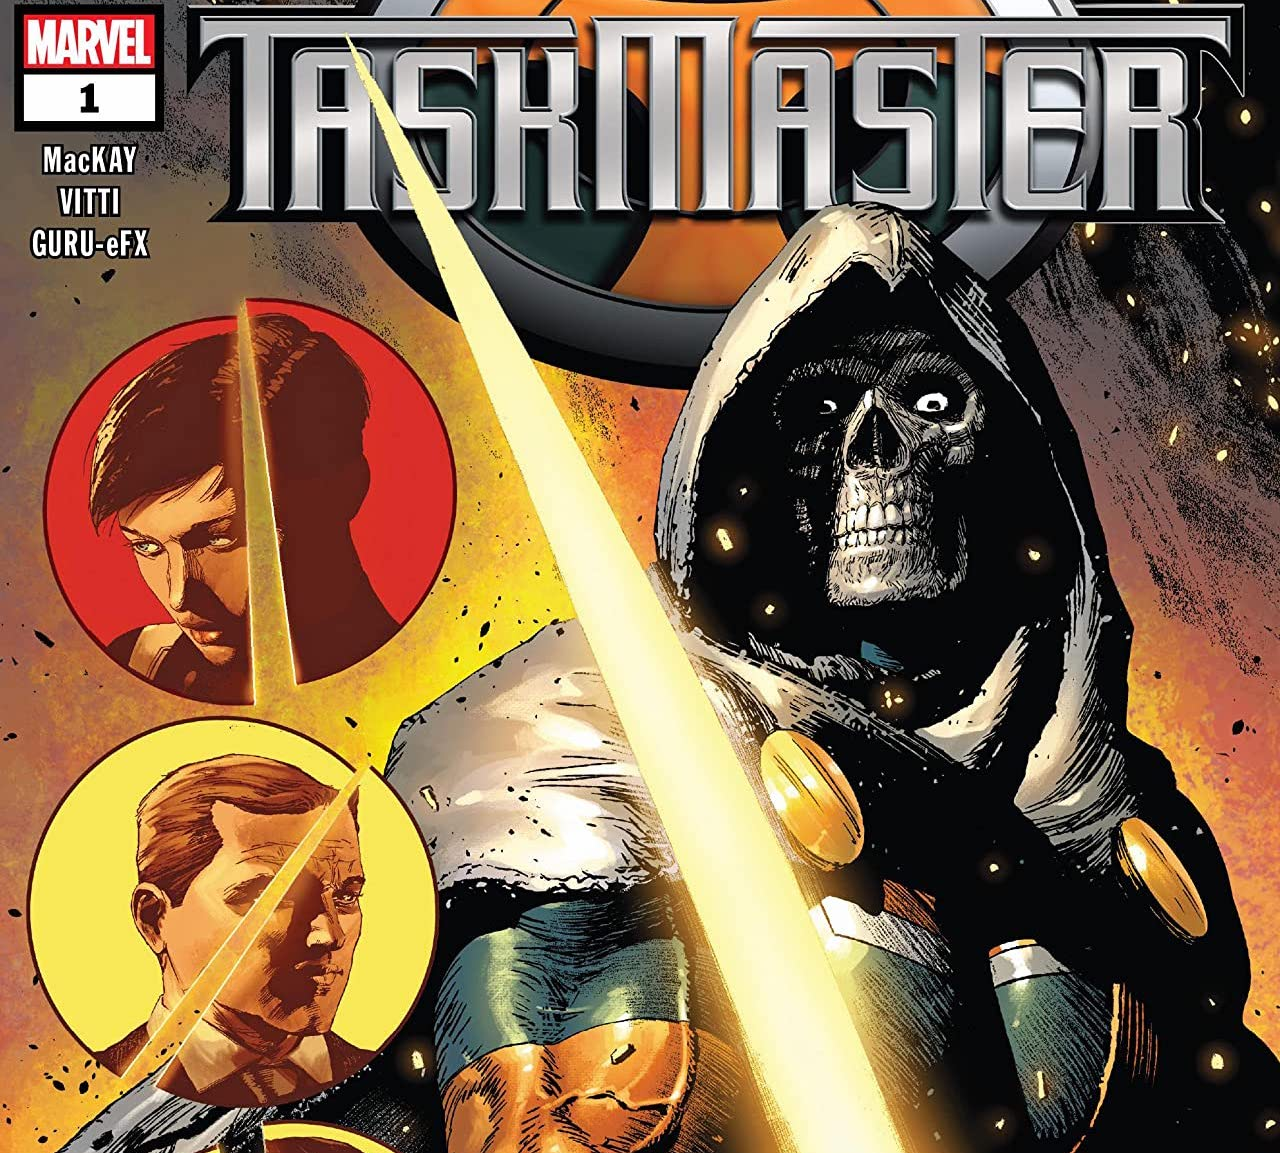 'Taskmaster' #1 review